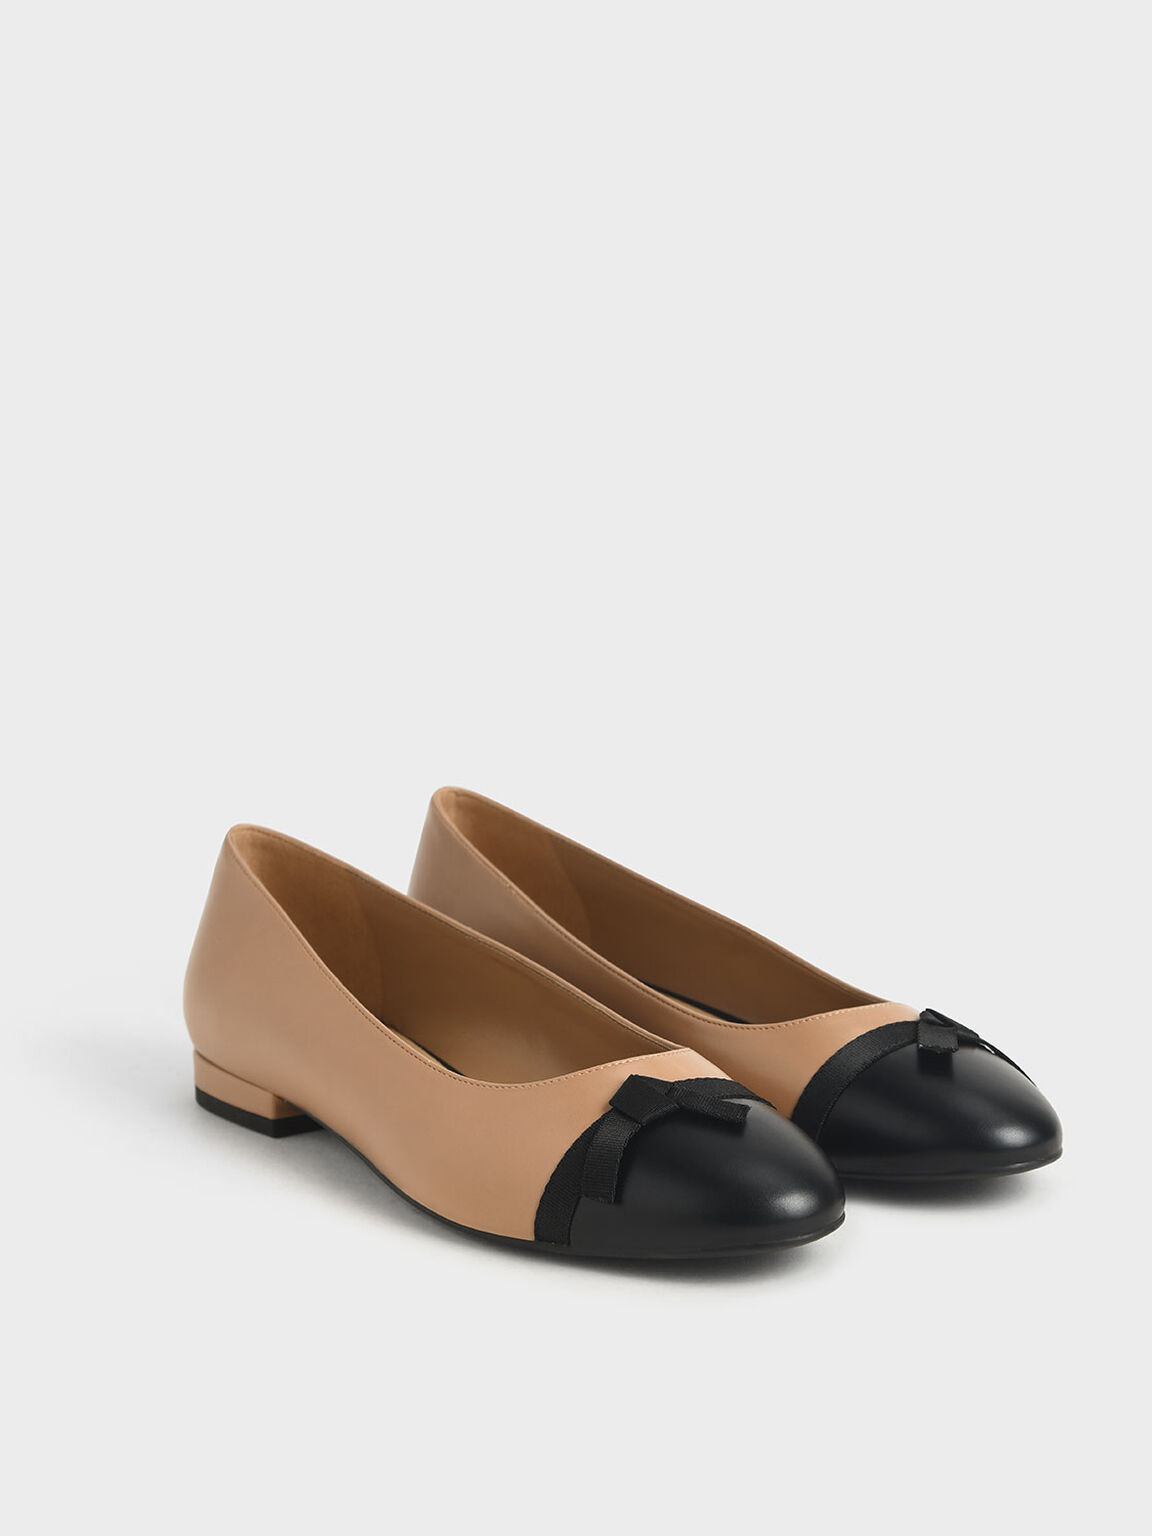 Two-Tone Ribbon Tie Ballet Pumps, Nude, hi-res